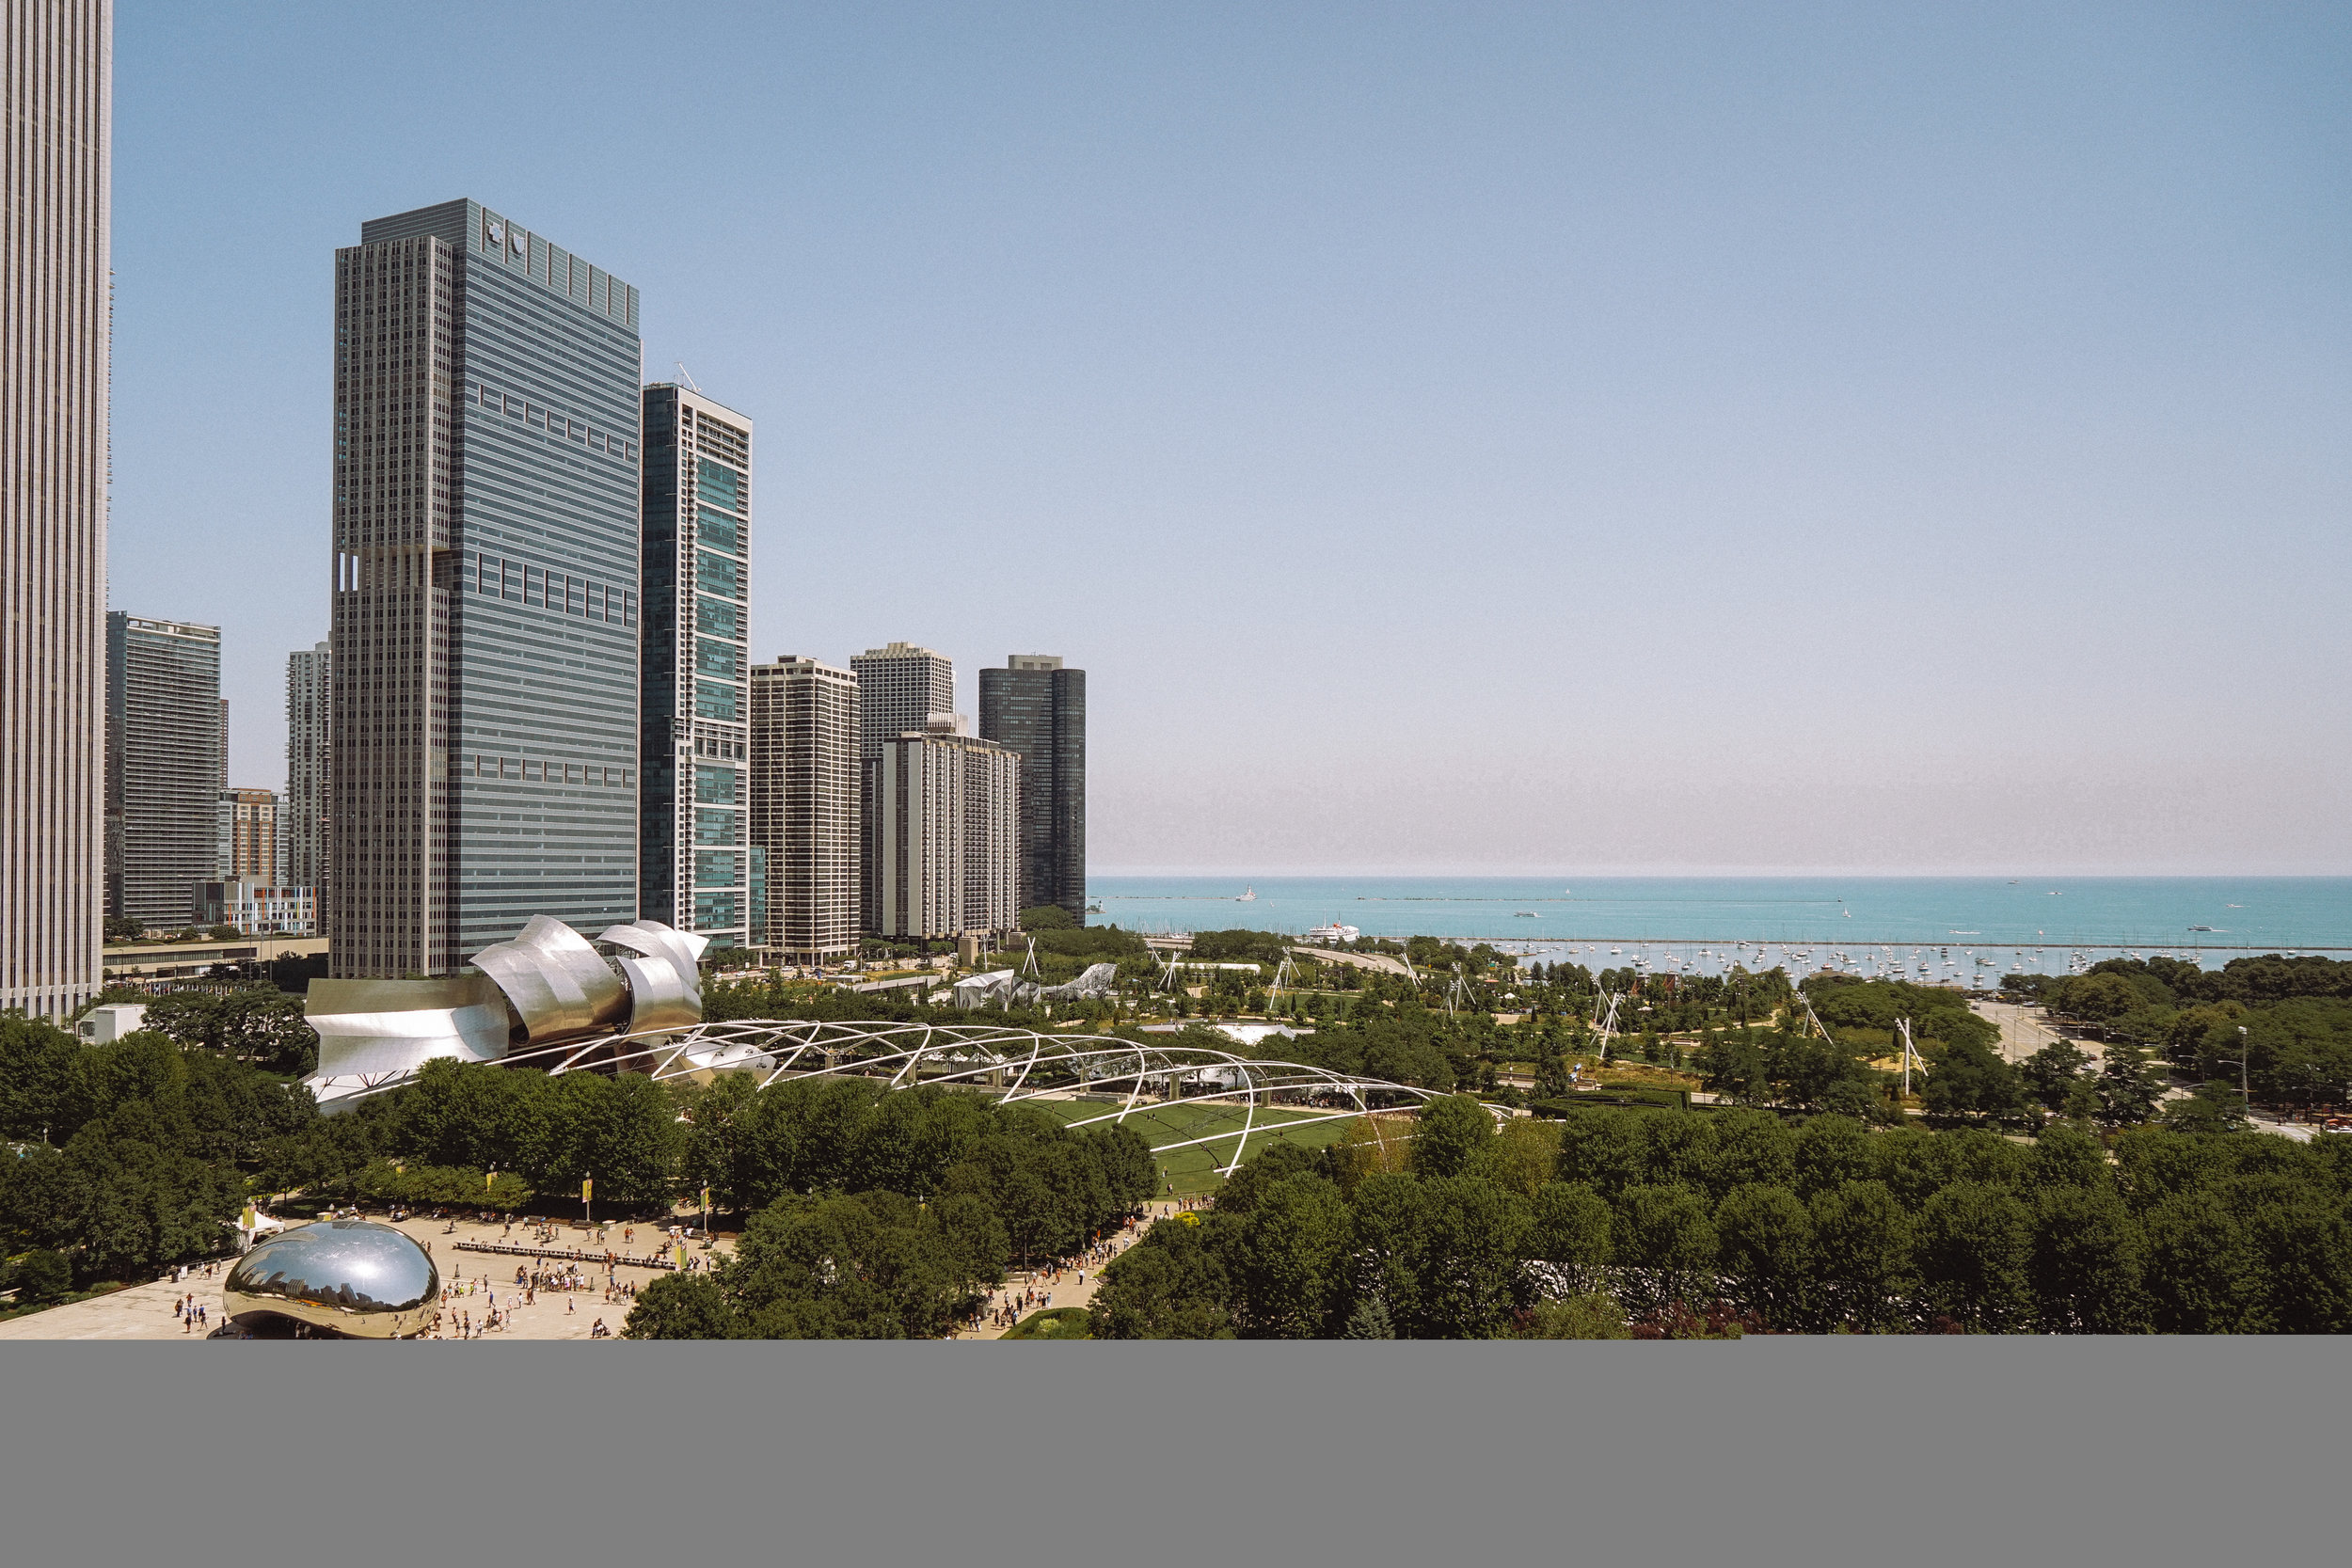 Rooftop View of Millennium Park in Chicago